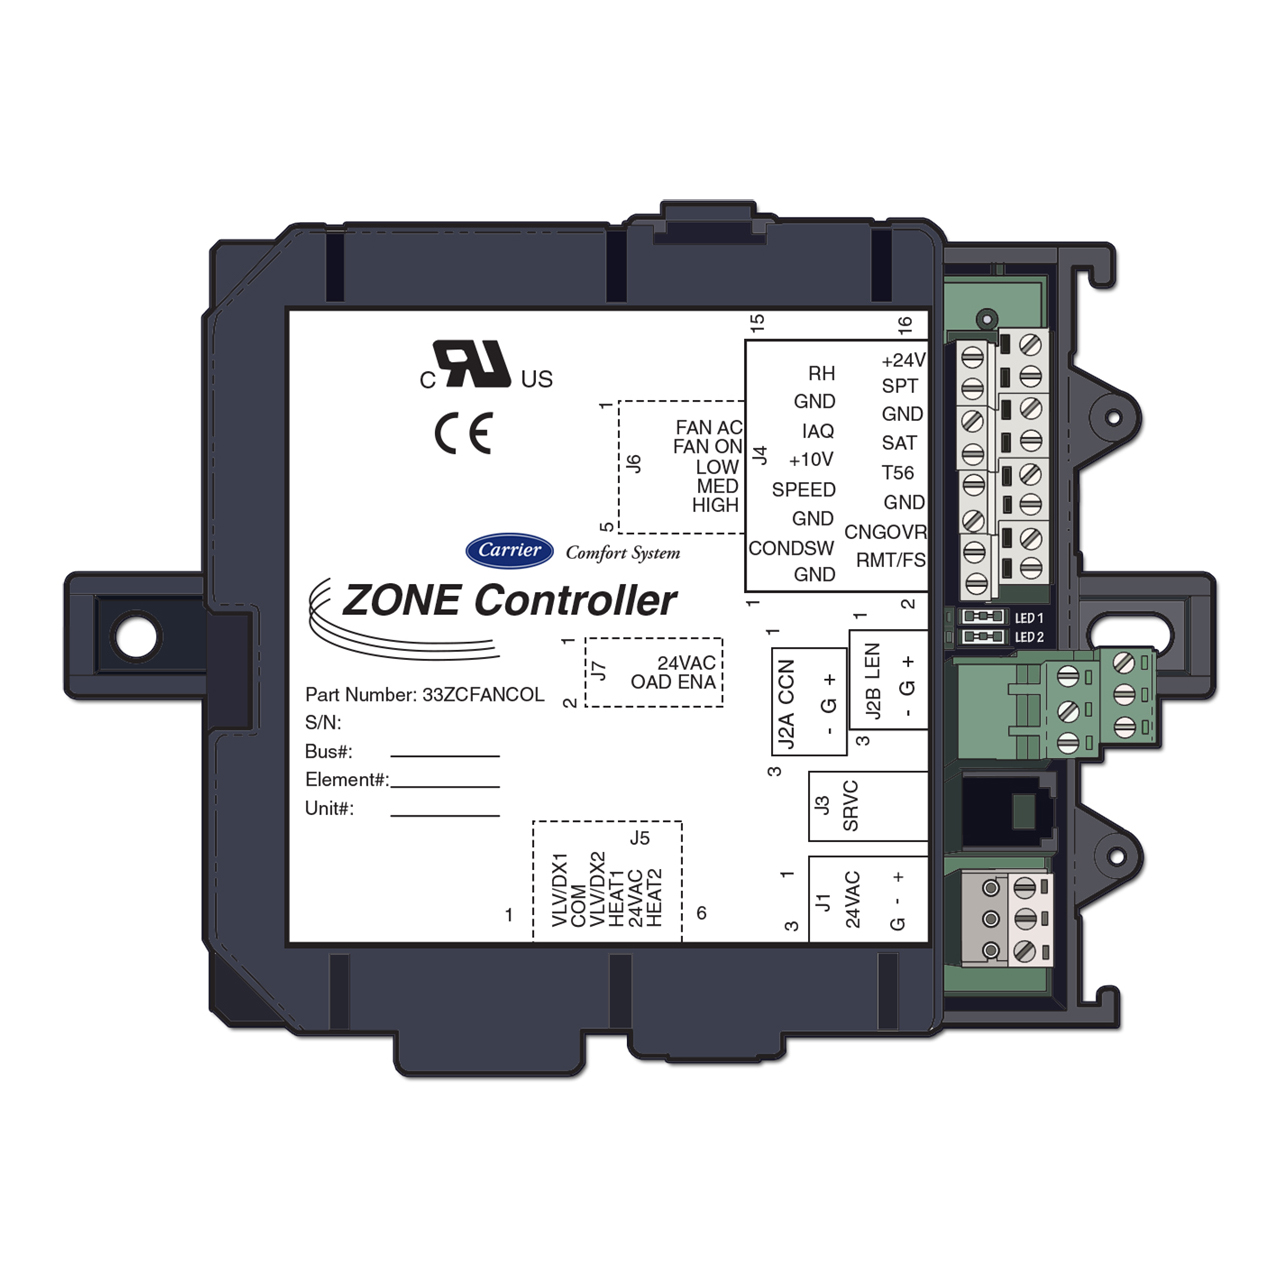 carrier-33ZCFANCOL-fan-coil-zone-product-integrated-controller